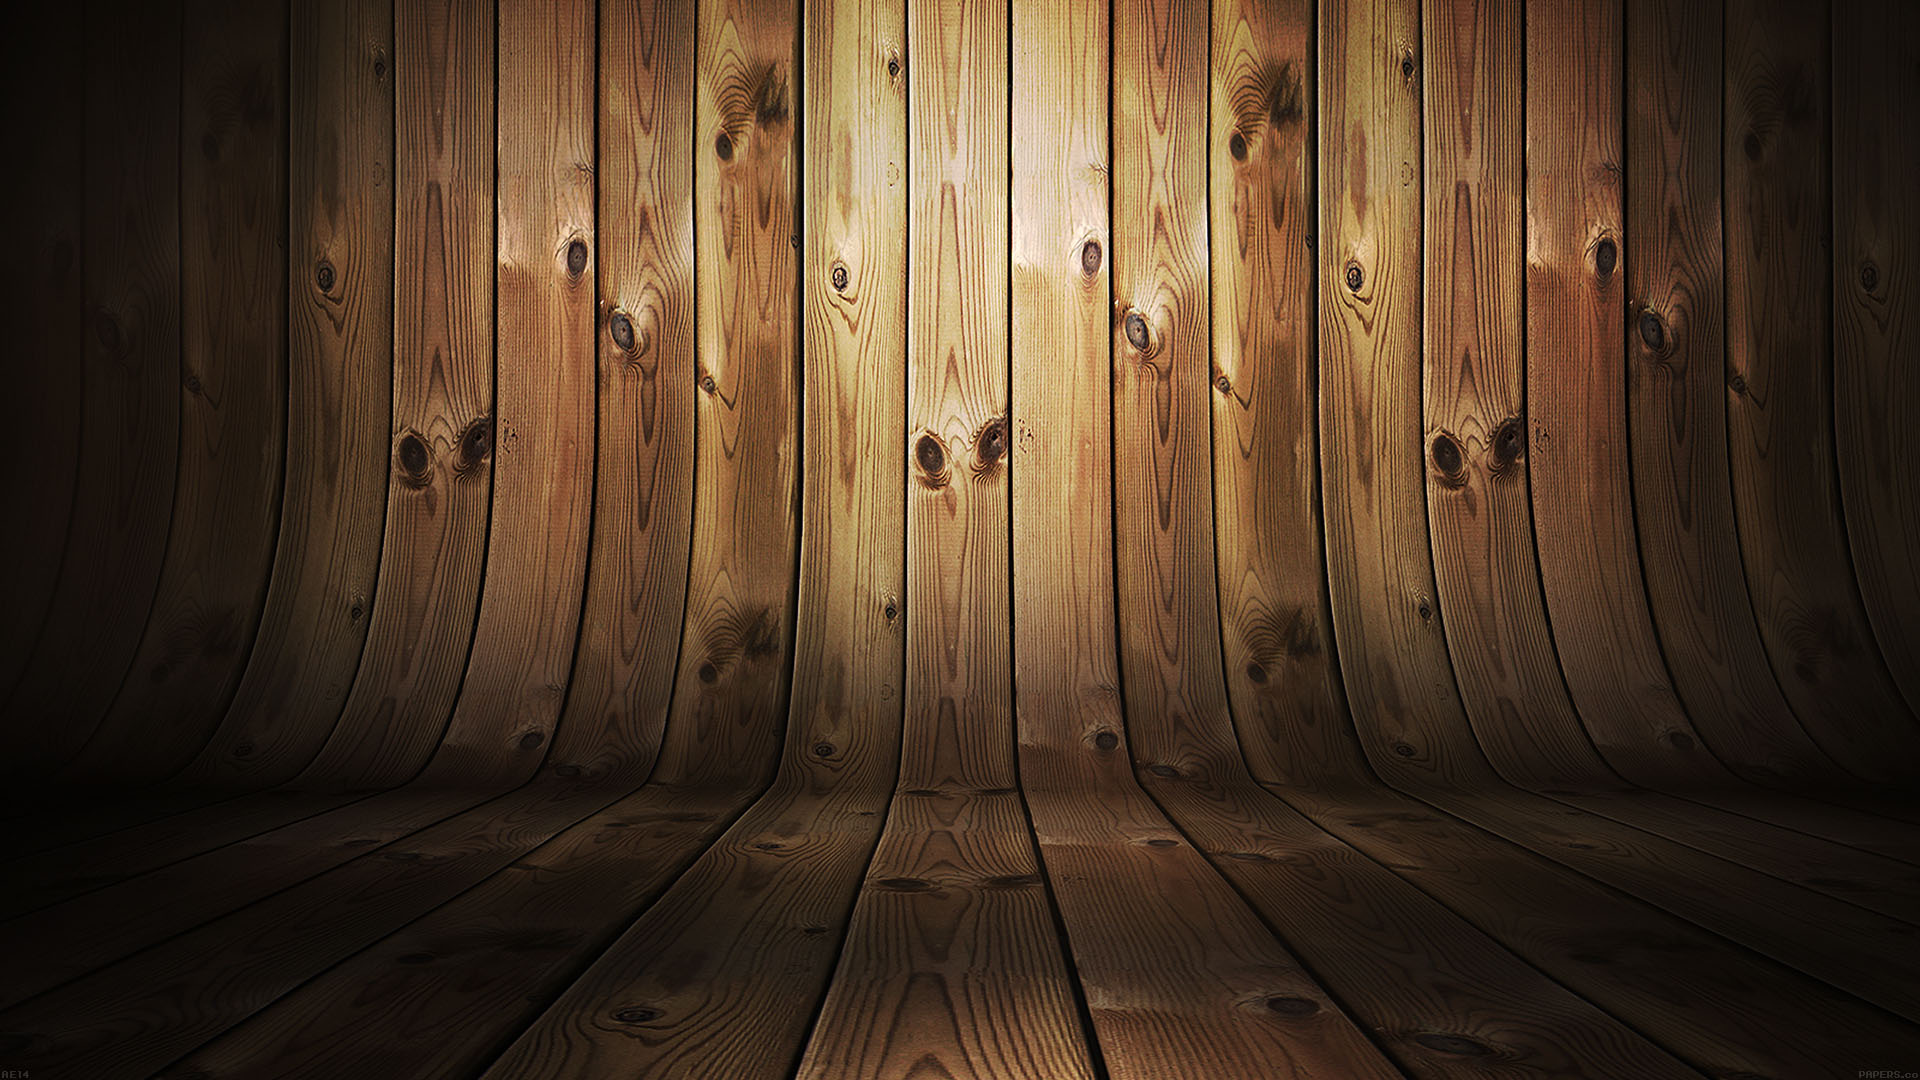 Ae14 Dark Bent Wood Background Wallpaper